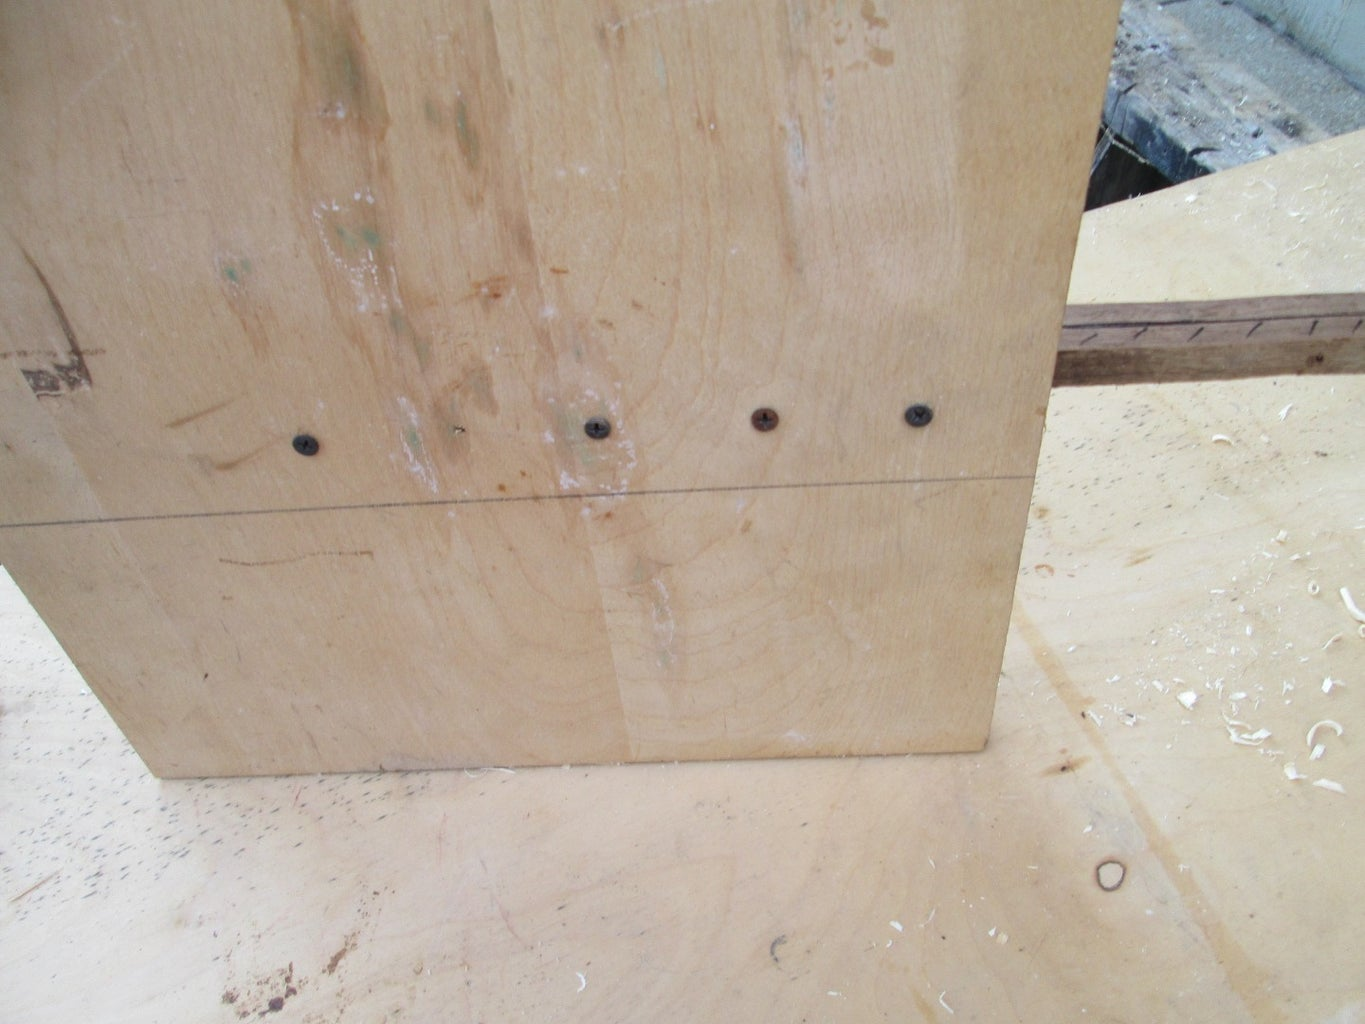 Make the Fixture to Cut the Bowl (Part 1)